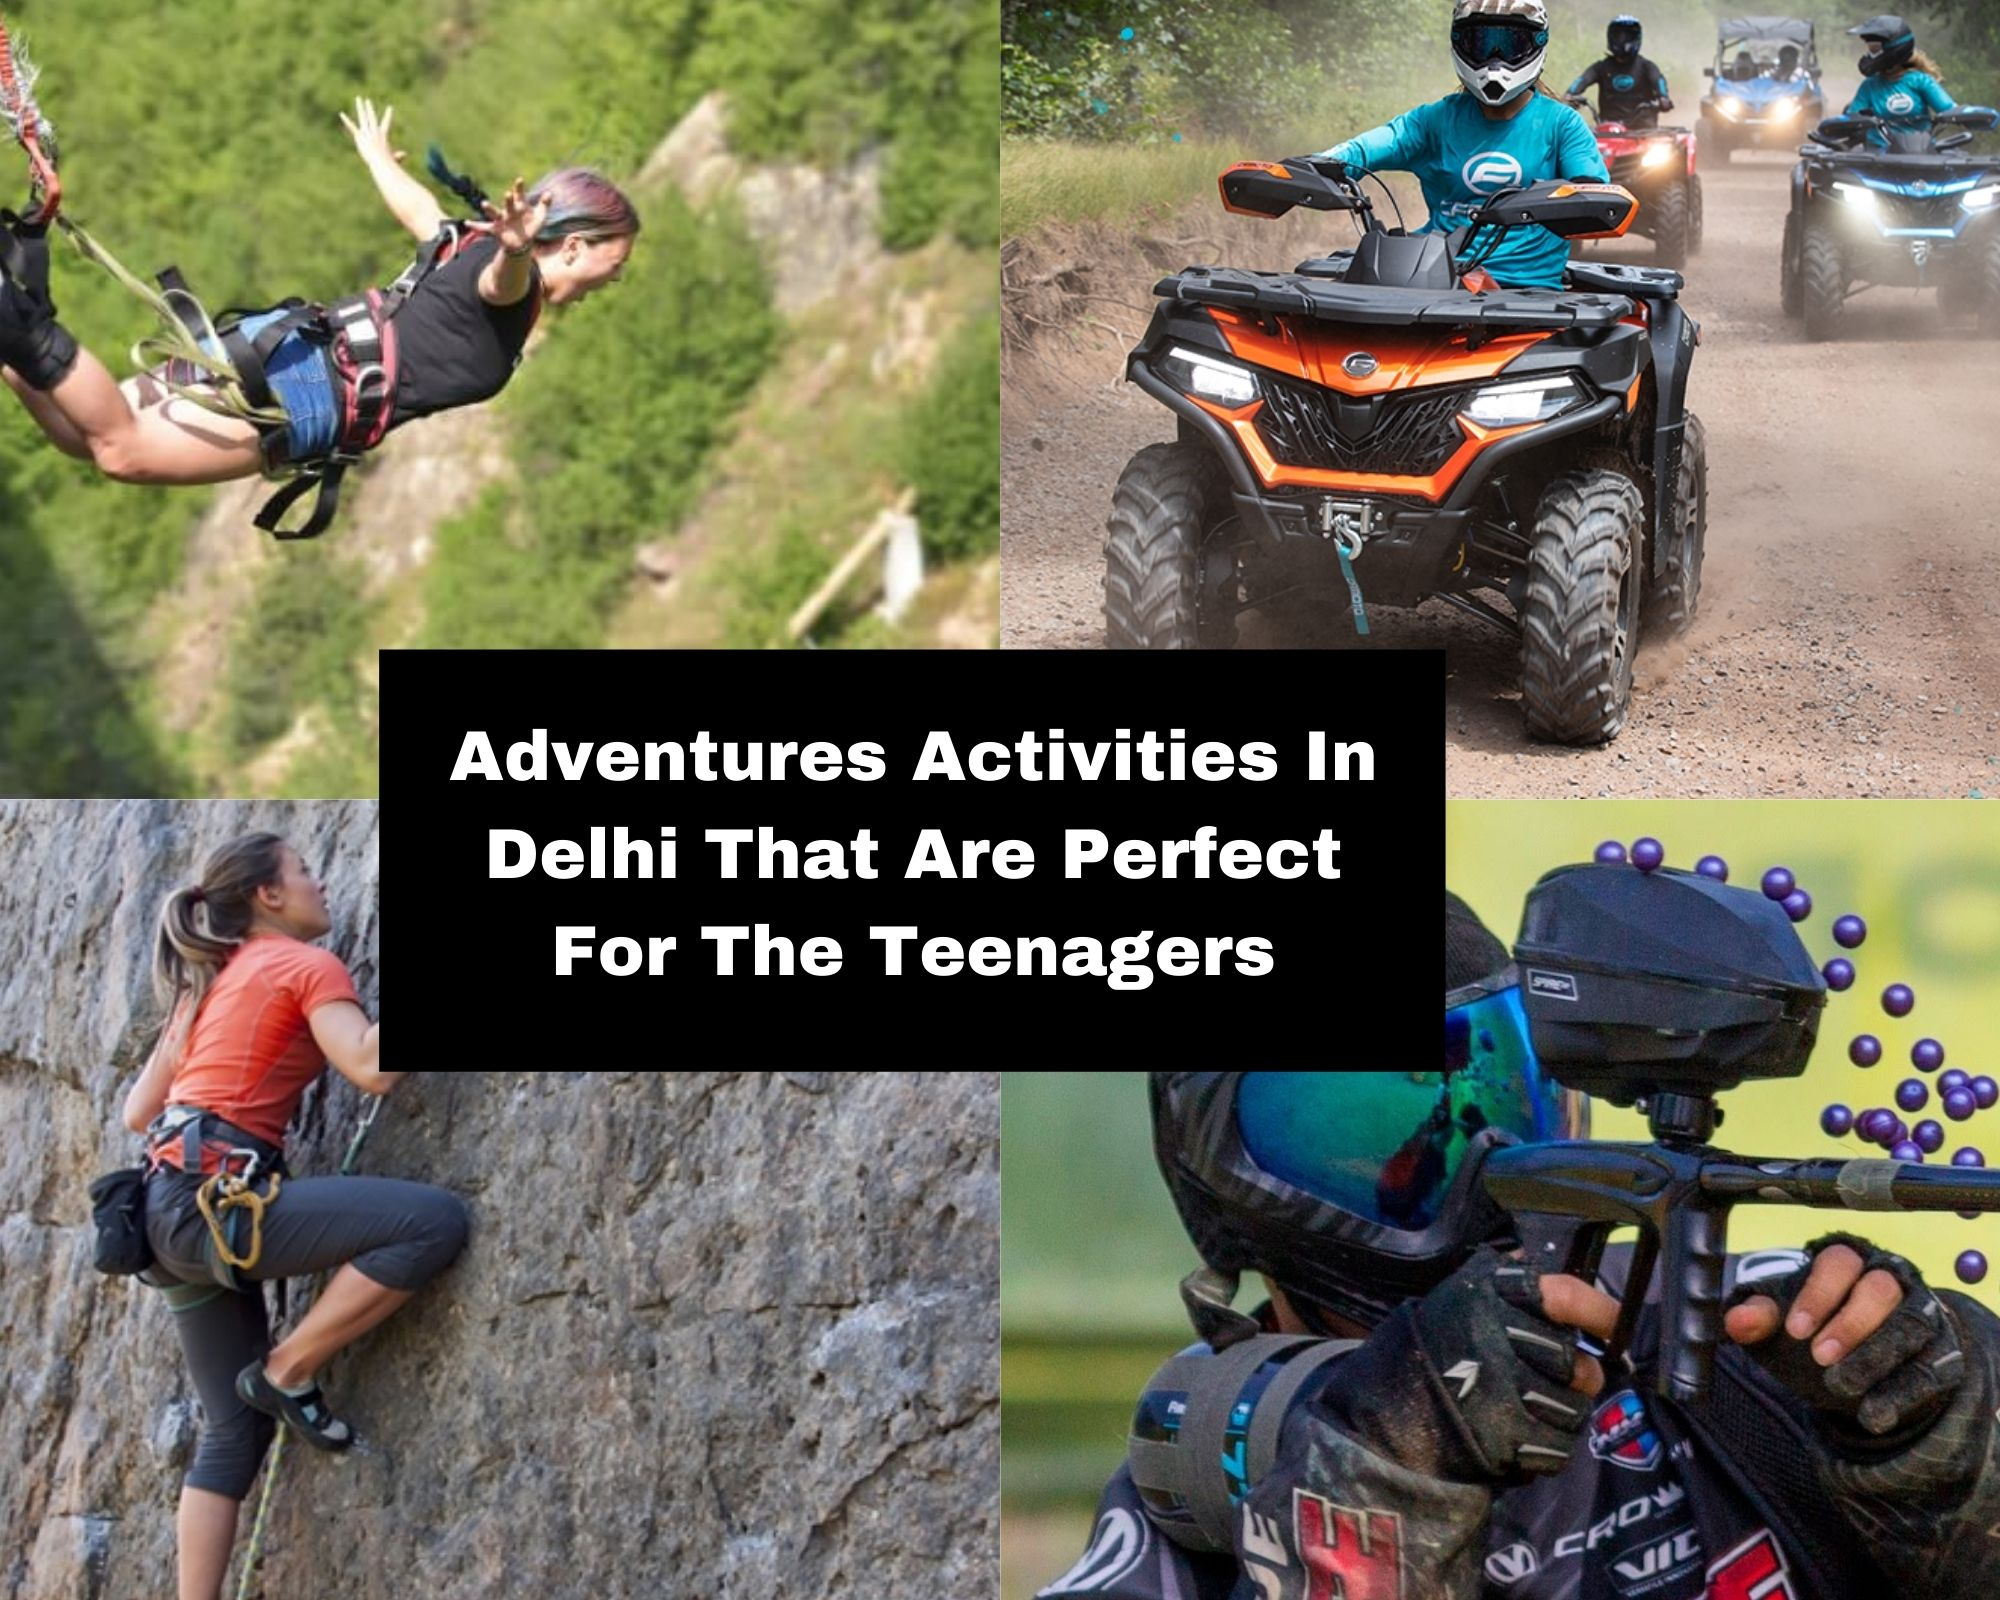 Adventures Activities In Delhi That Are Perfect For The Teenagers